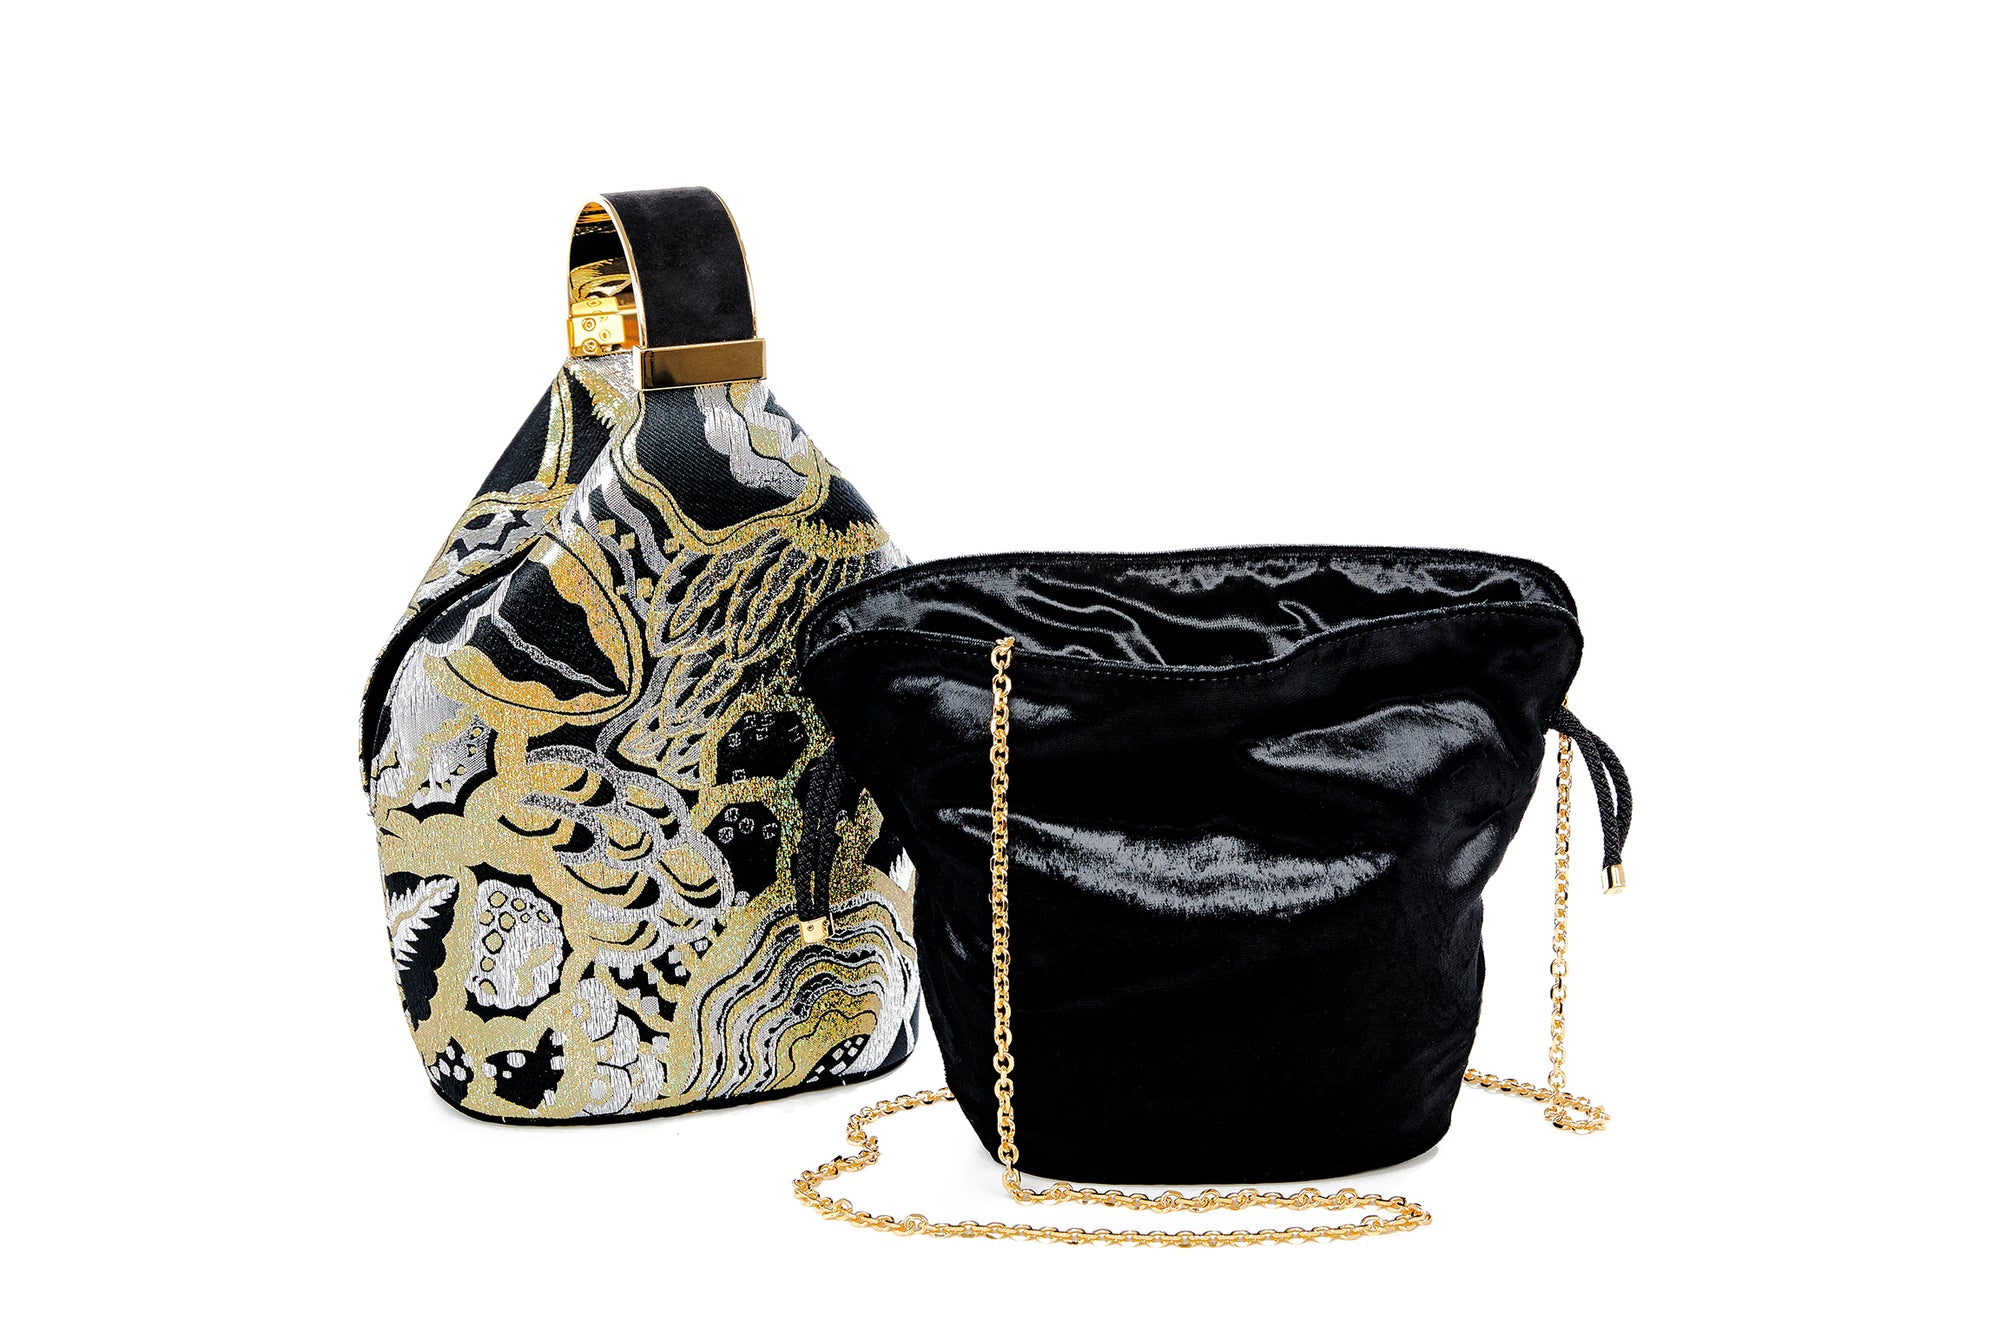 Kit Bracelet Bag in Gold Art Disco Metallic Lurex Jacquard